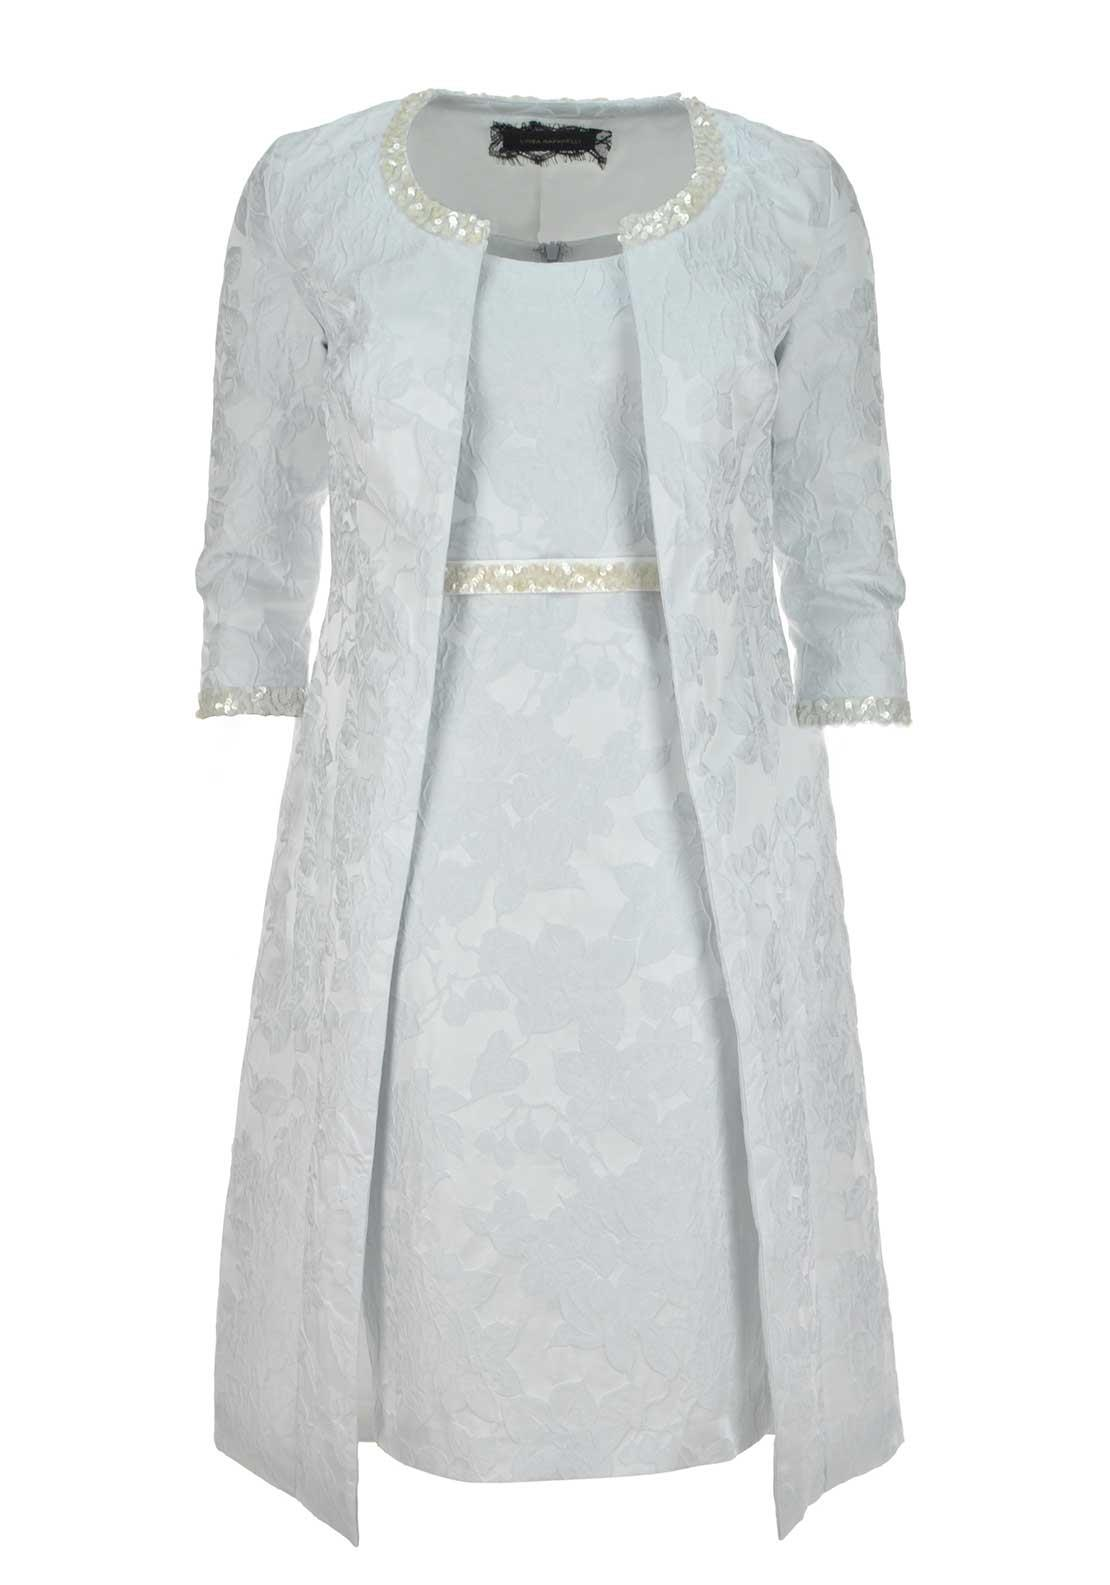 Linea Raffaeli Embellished Dress and Coat, Ice Blue